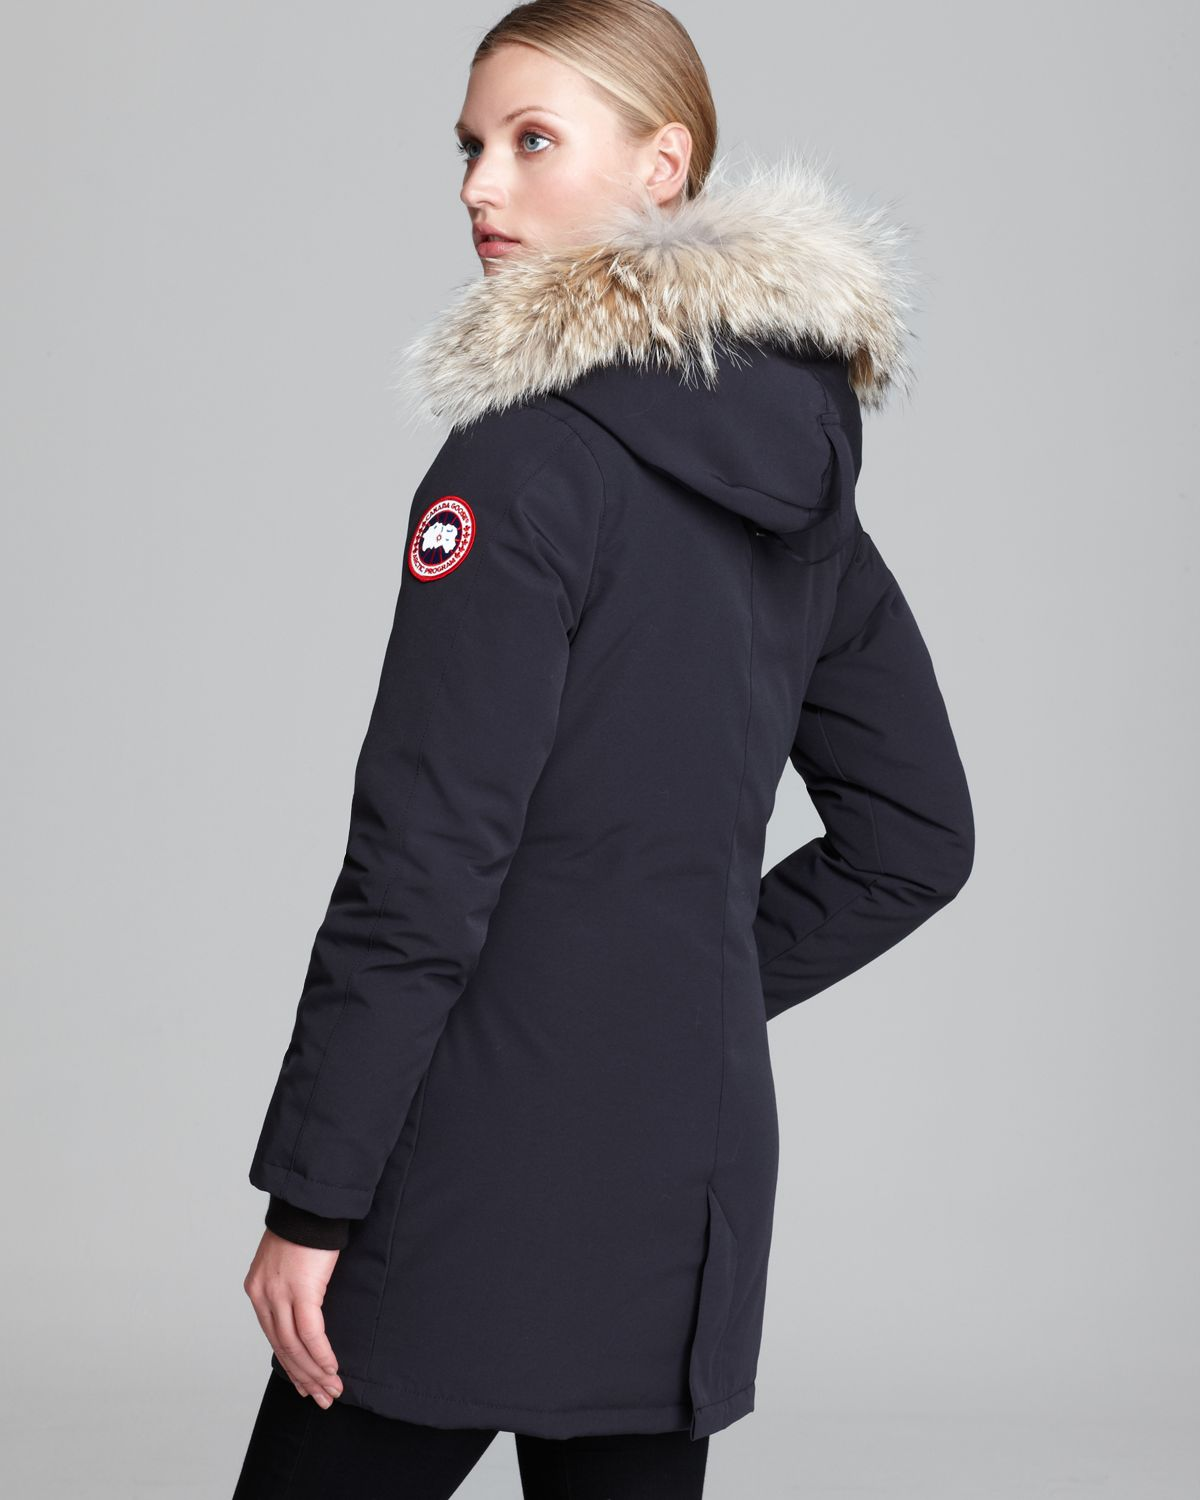 canada goose victoria canada canada goose jackets replica. Black Bedroom Furniture Sets. Home Design Ideas